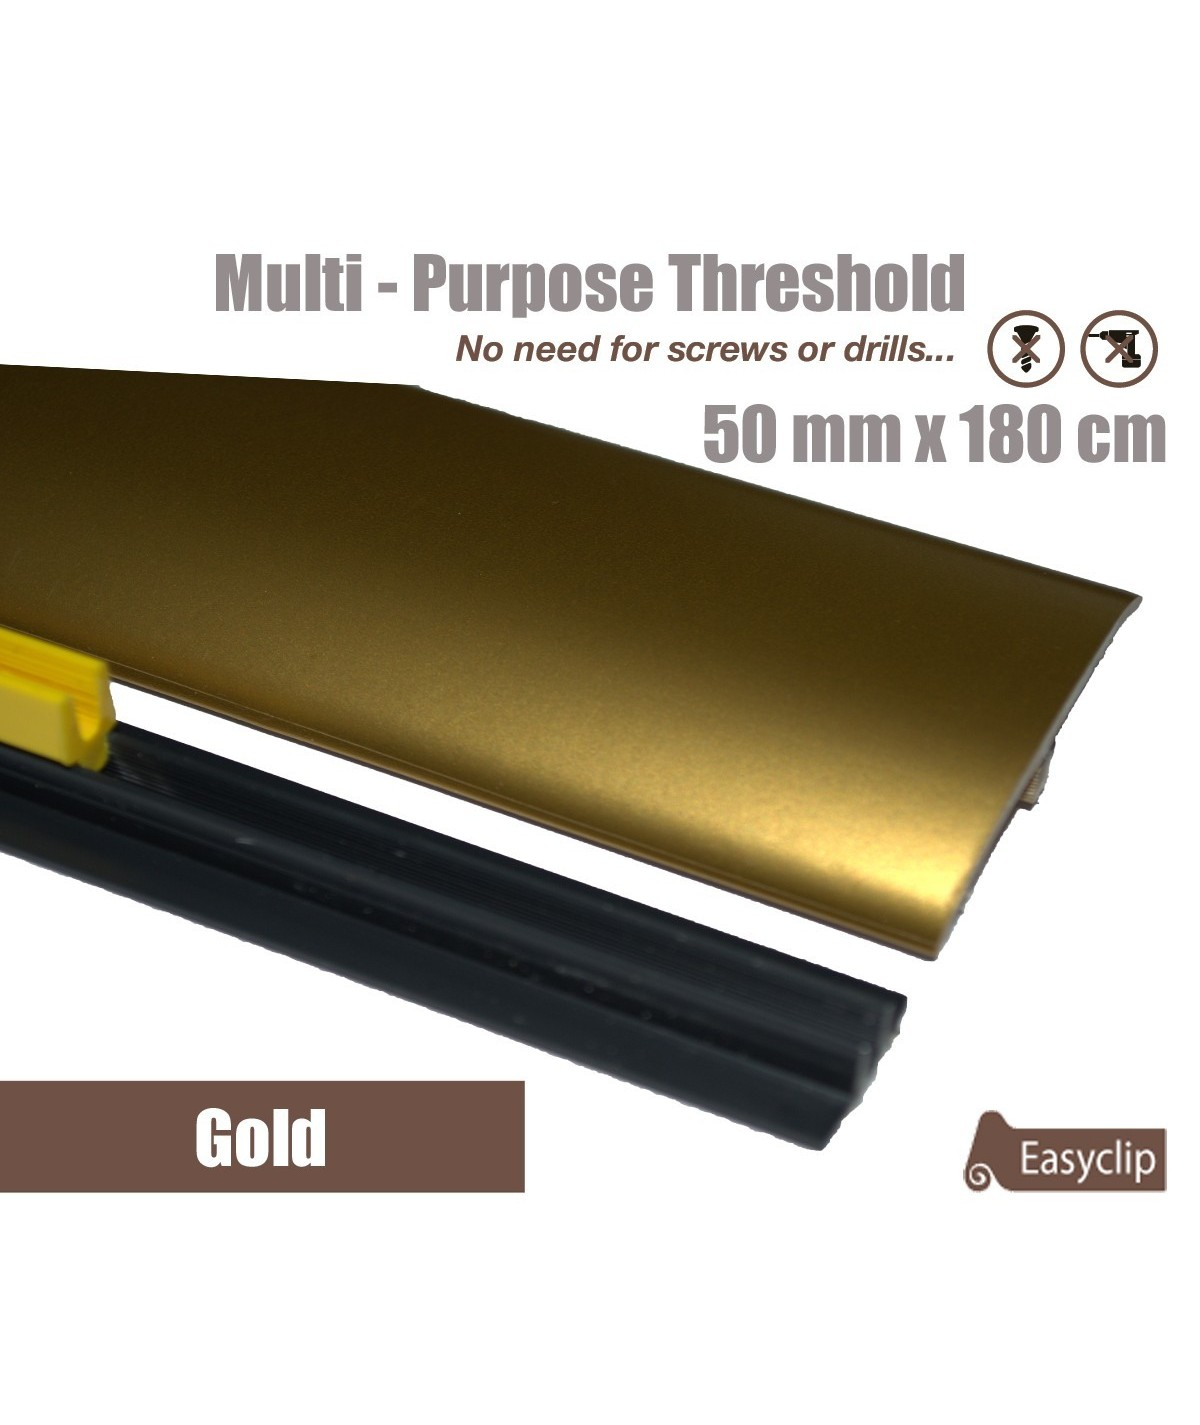 Gold Laminated Transition Threshold Strip 50mm x180cm Multi-Height/Pivots